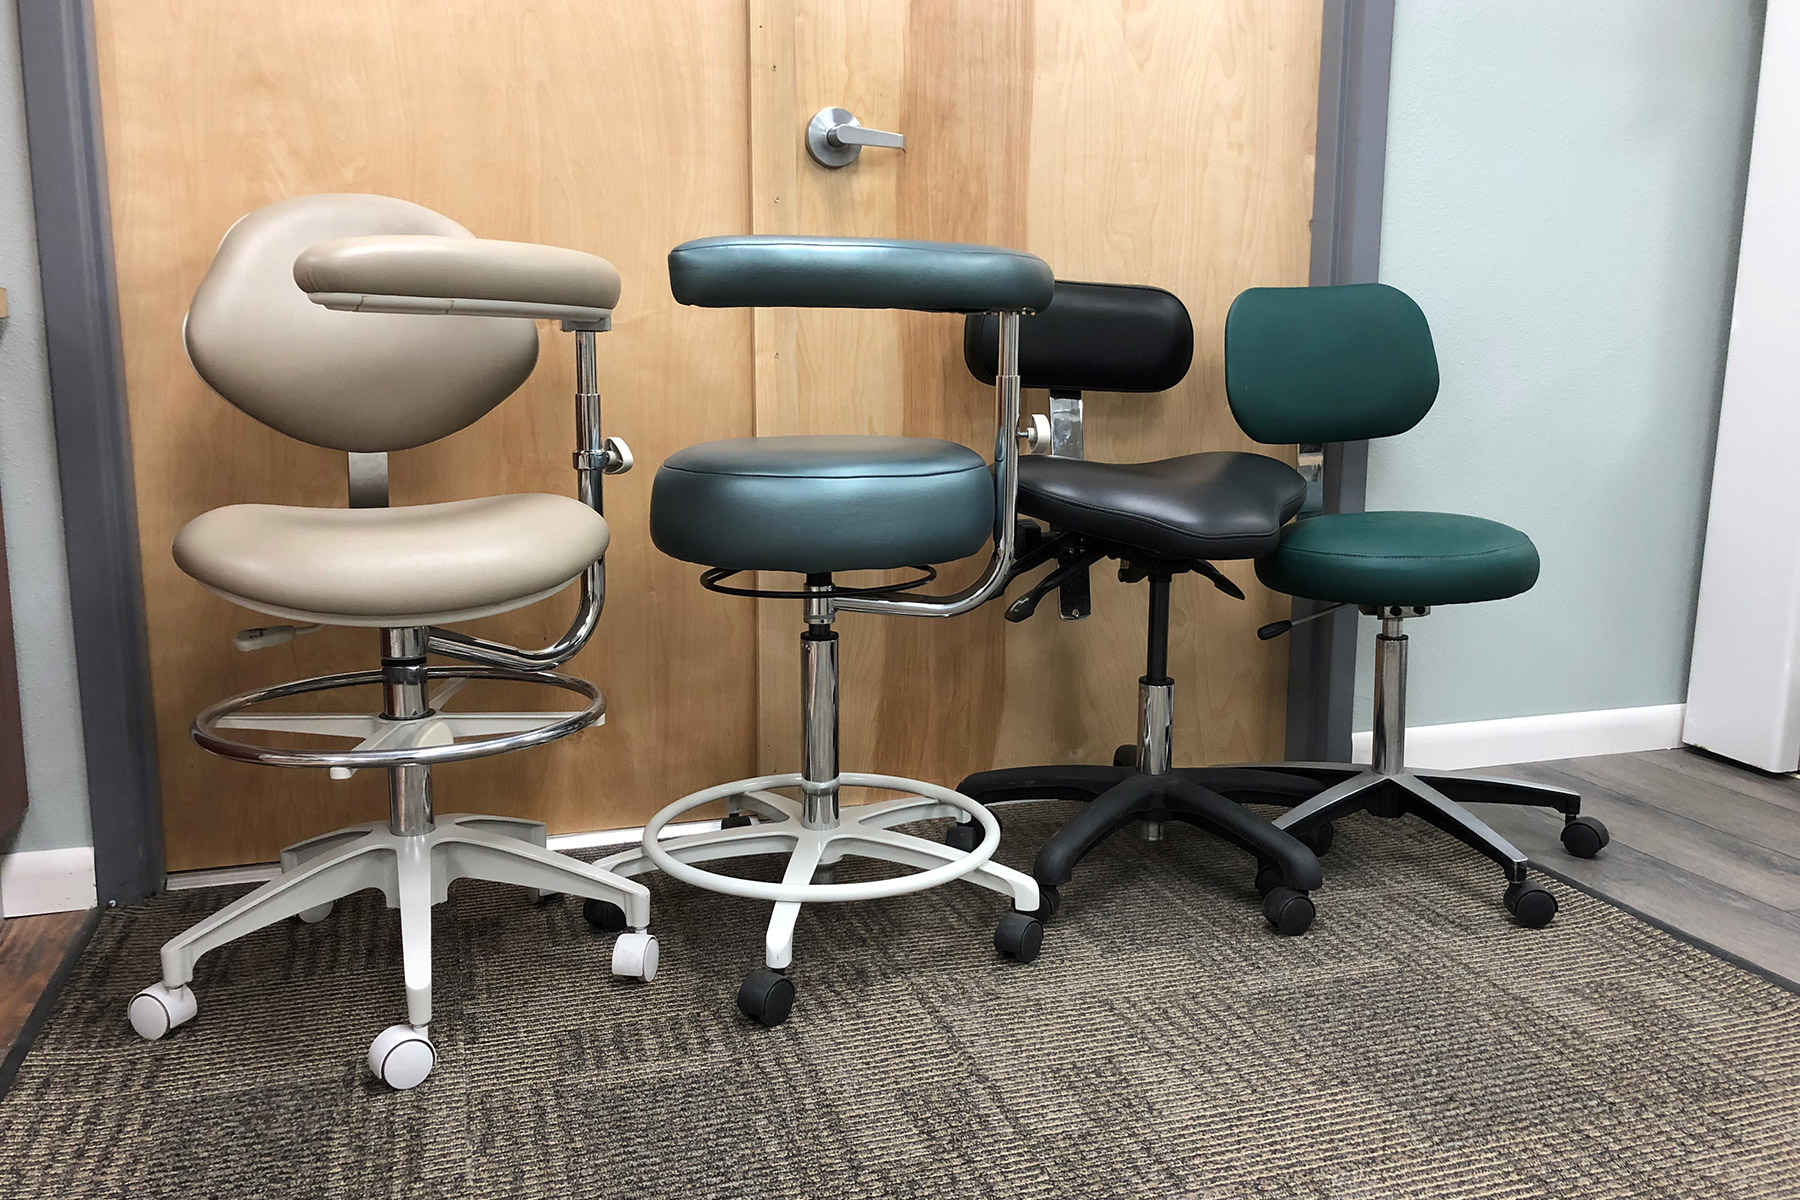 Doctor's Stool Recover Order Form